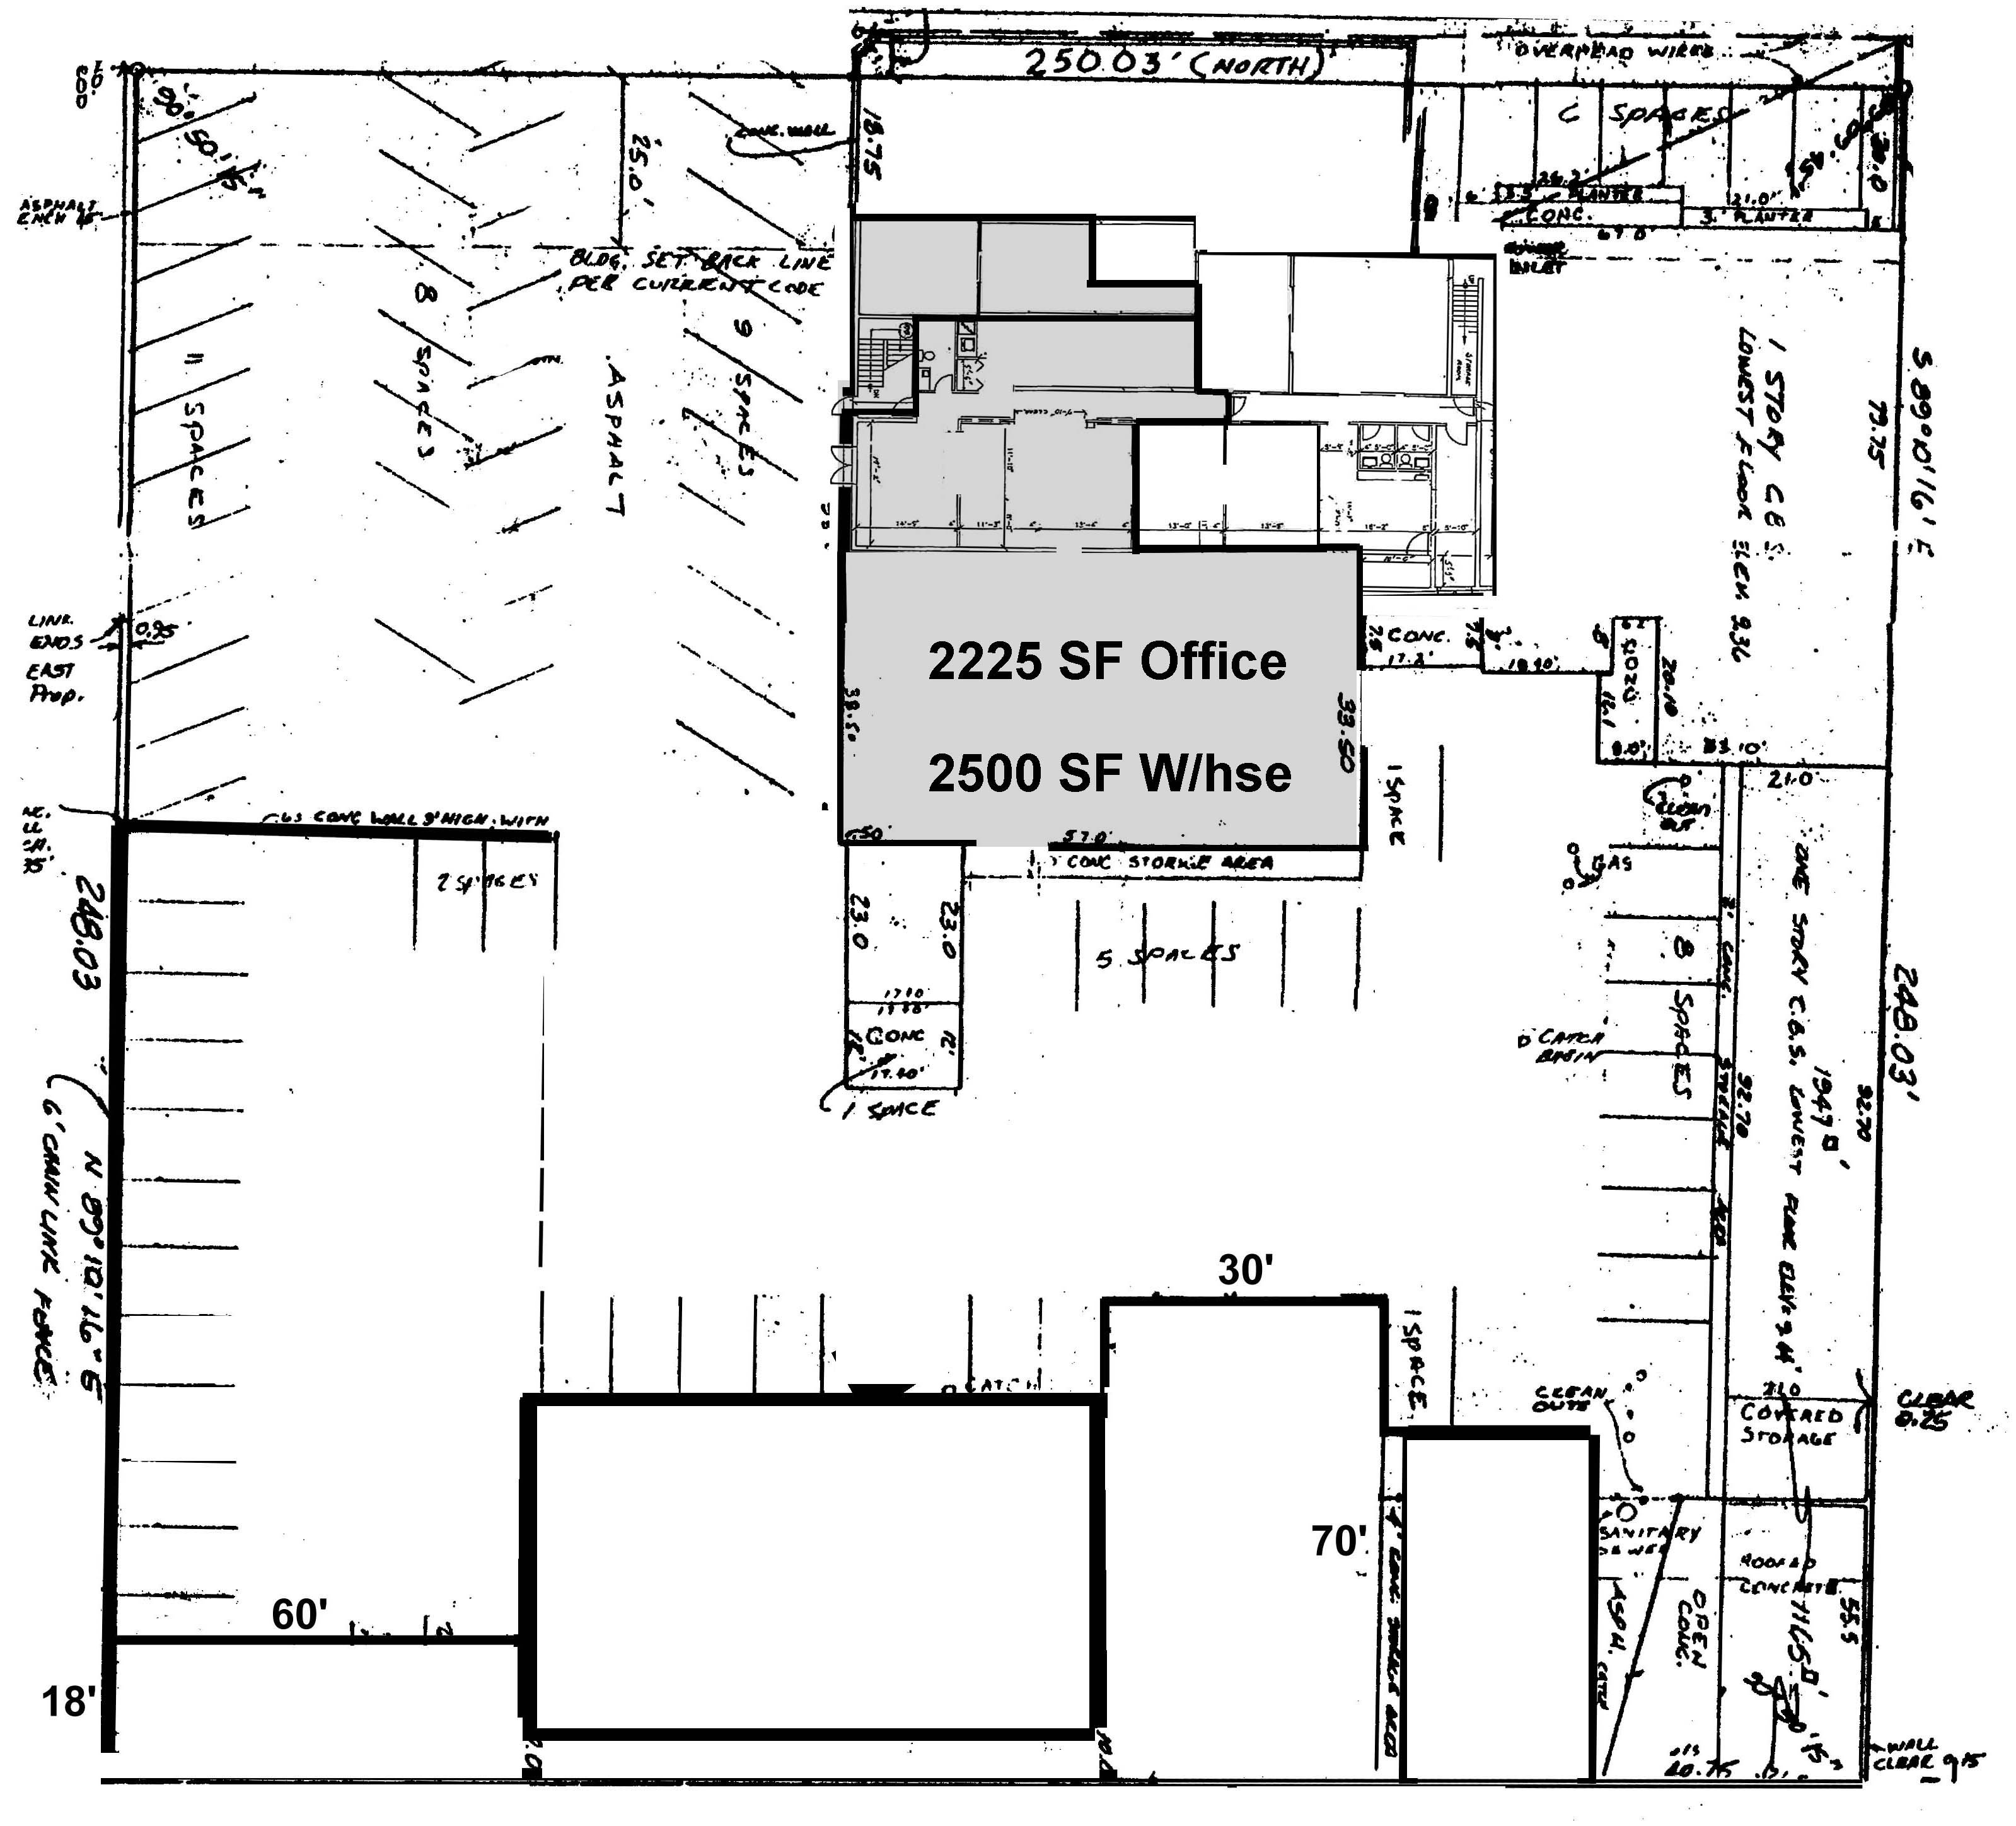 Square Feet Of Office And Square Feet Of